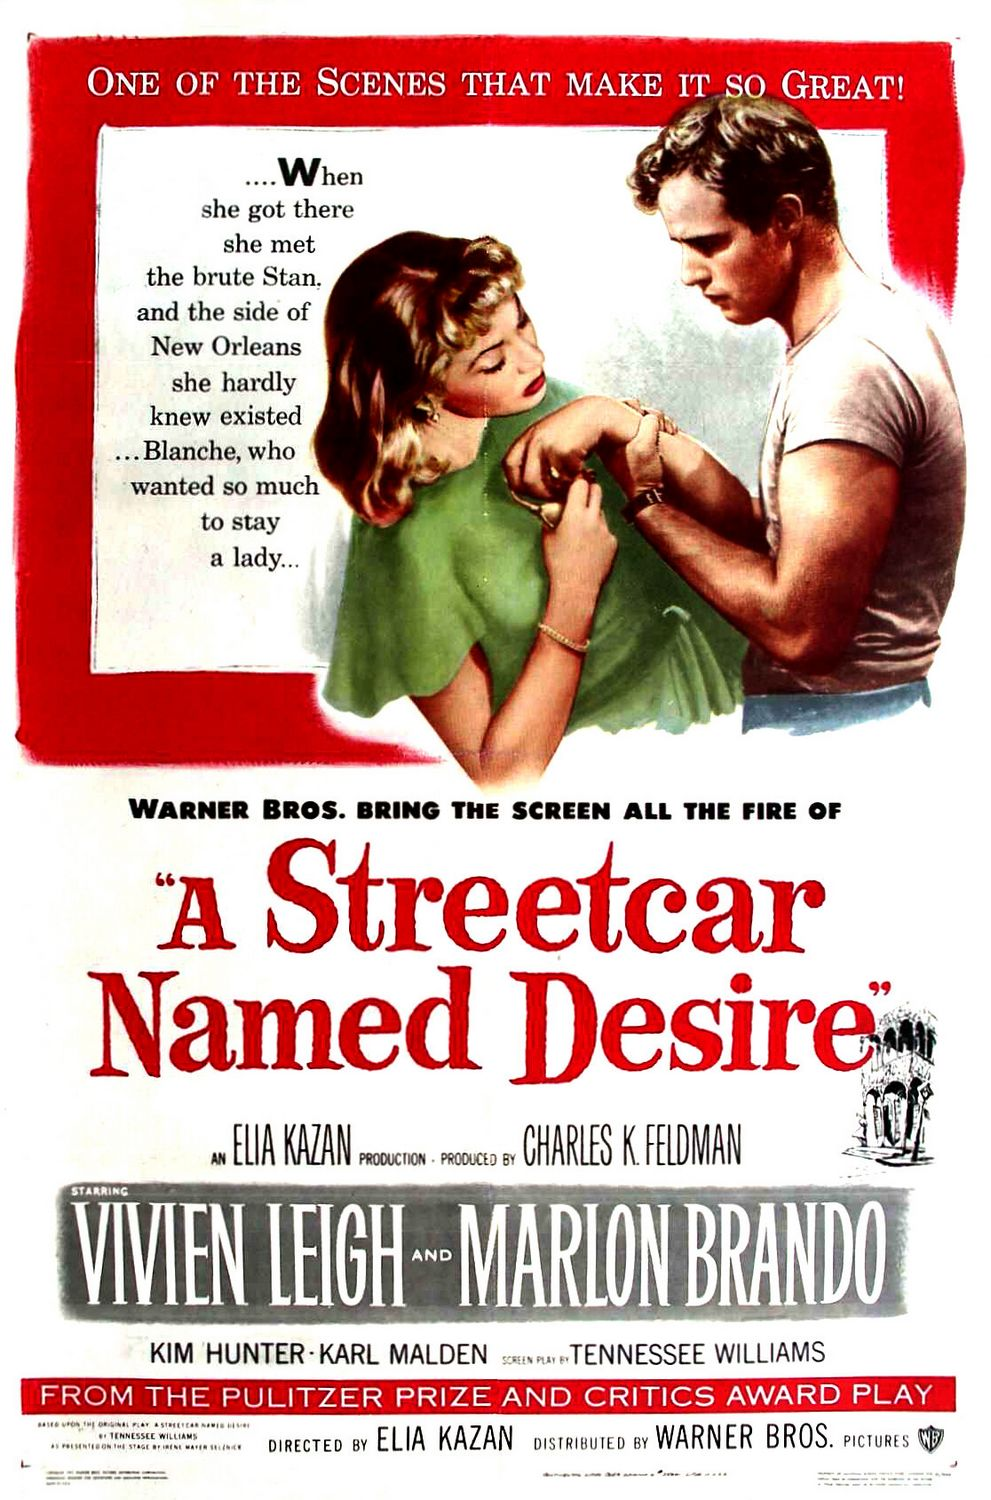 a streetcar named desire summary 2 This is the plot of tennessee williams's classic play, a streetcar named desire,  which opened on broadway on december 3, 1947 but the story of its making.